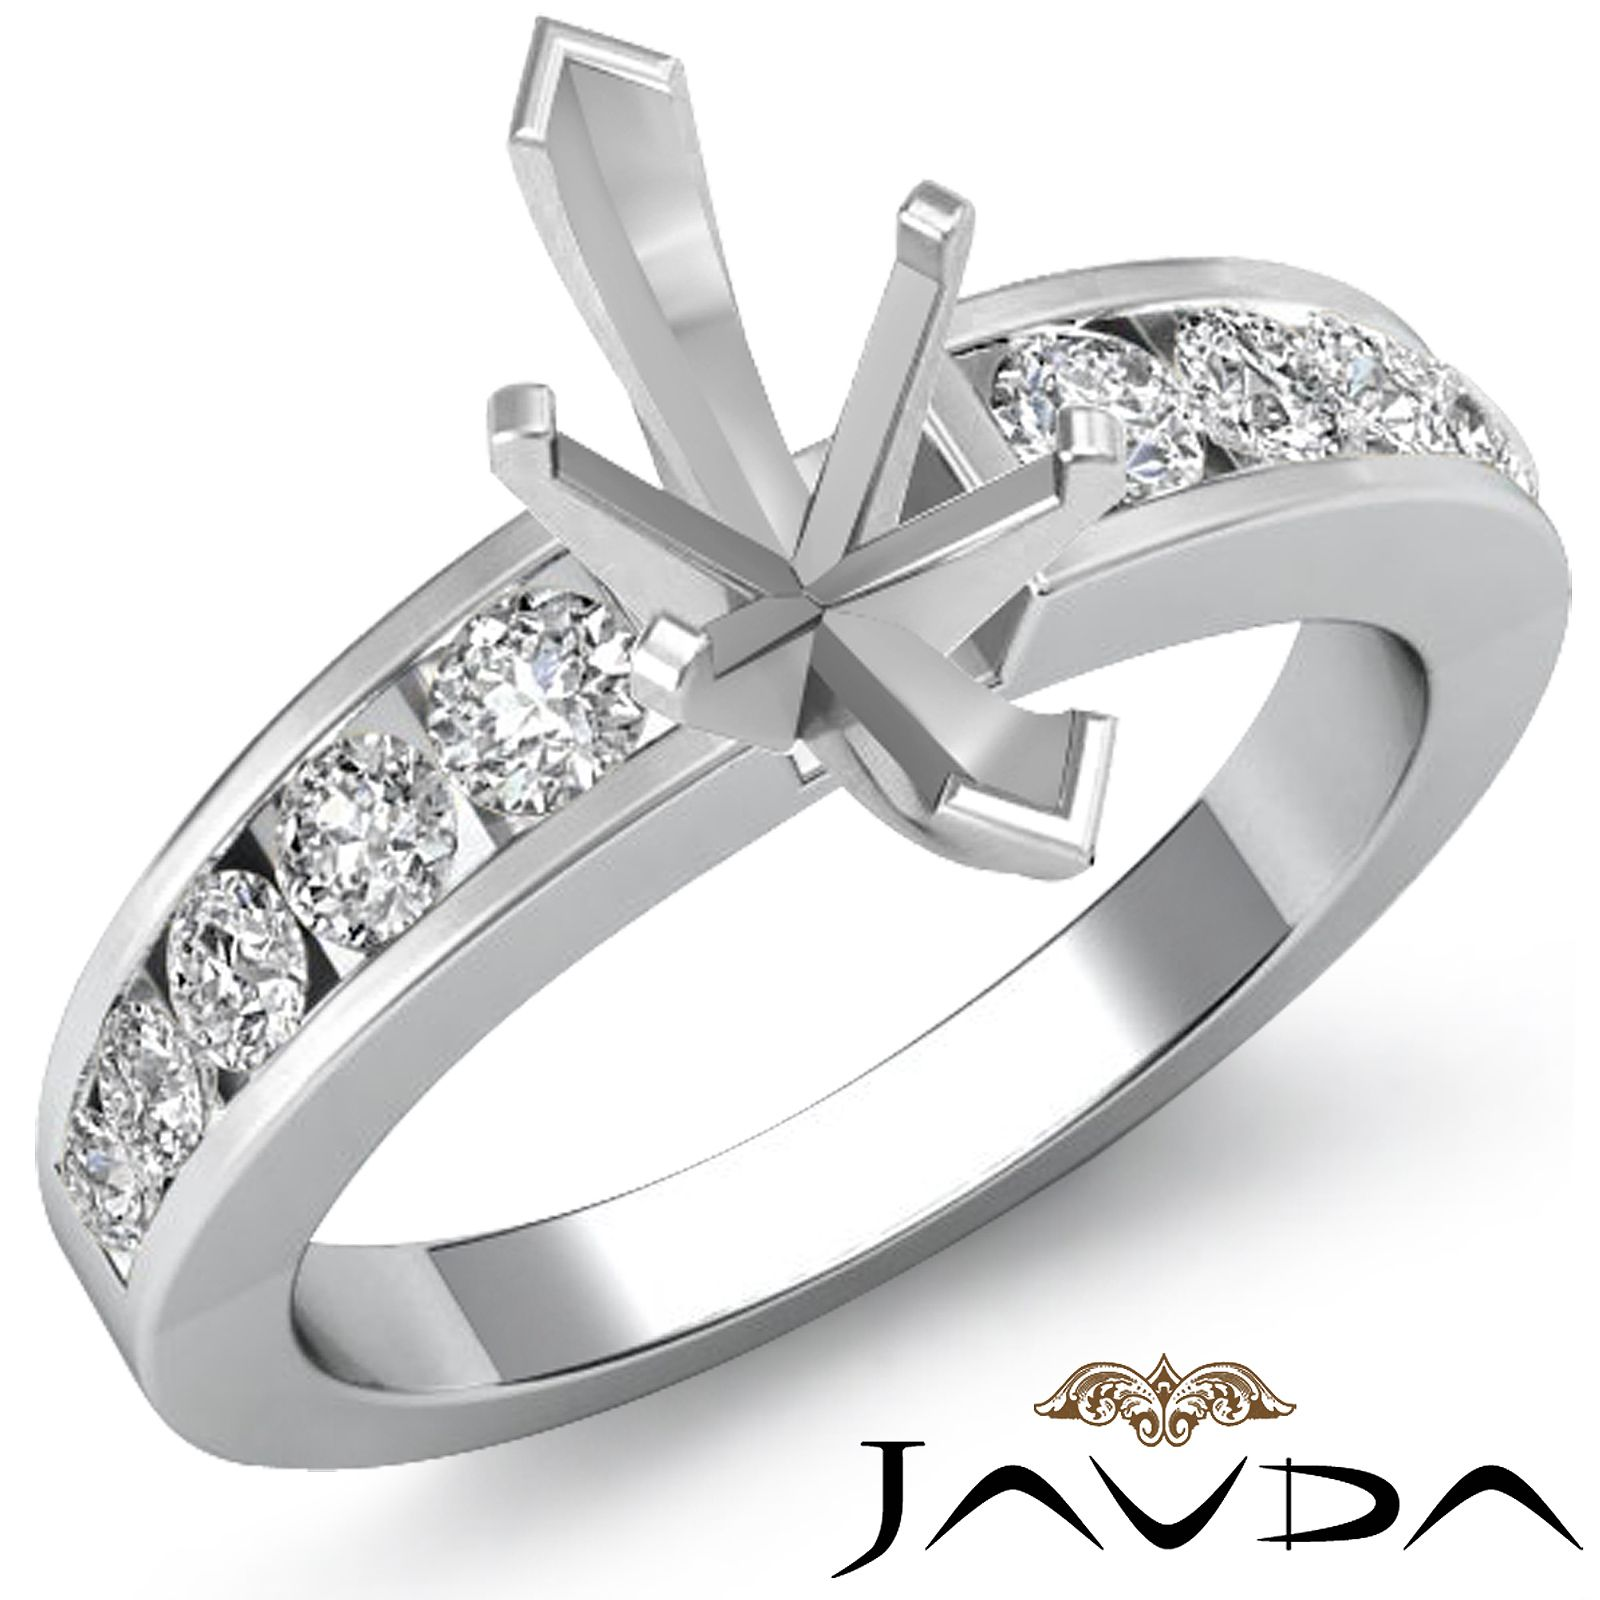 ideas rings of engagement amazing matvuk setting settings celtic for ring wedding jewellery knot appealing com best